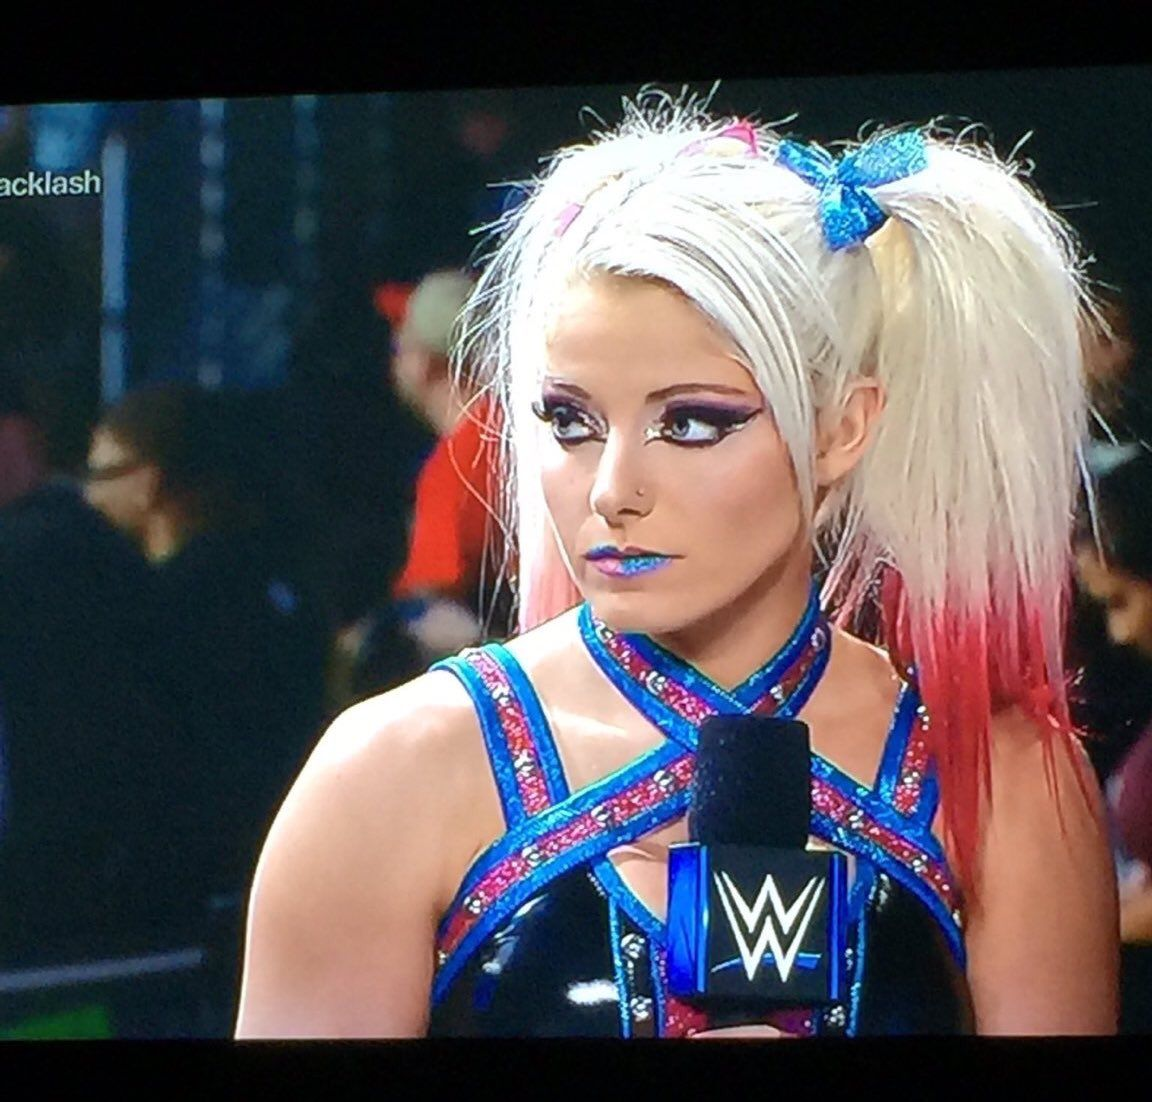 Twisted Thicc ★ Alexa Bliss ★ Little Miss everything THICC